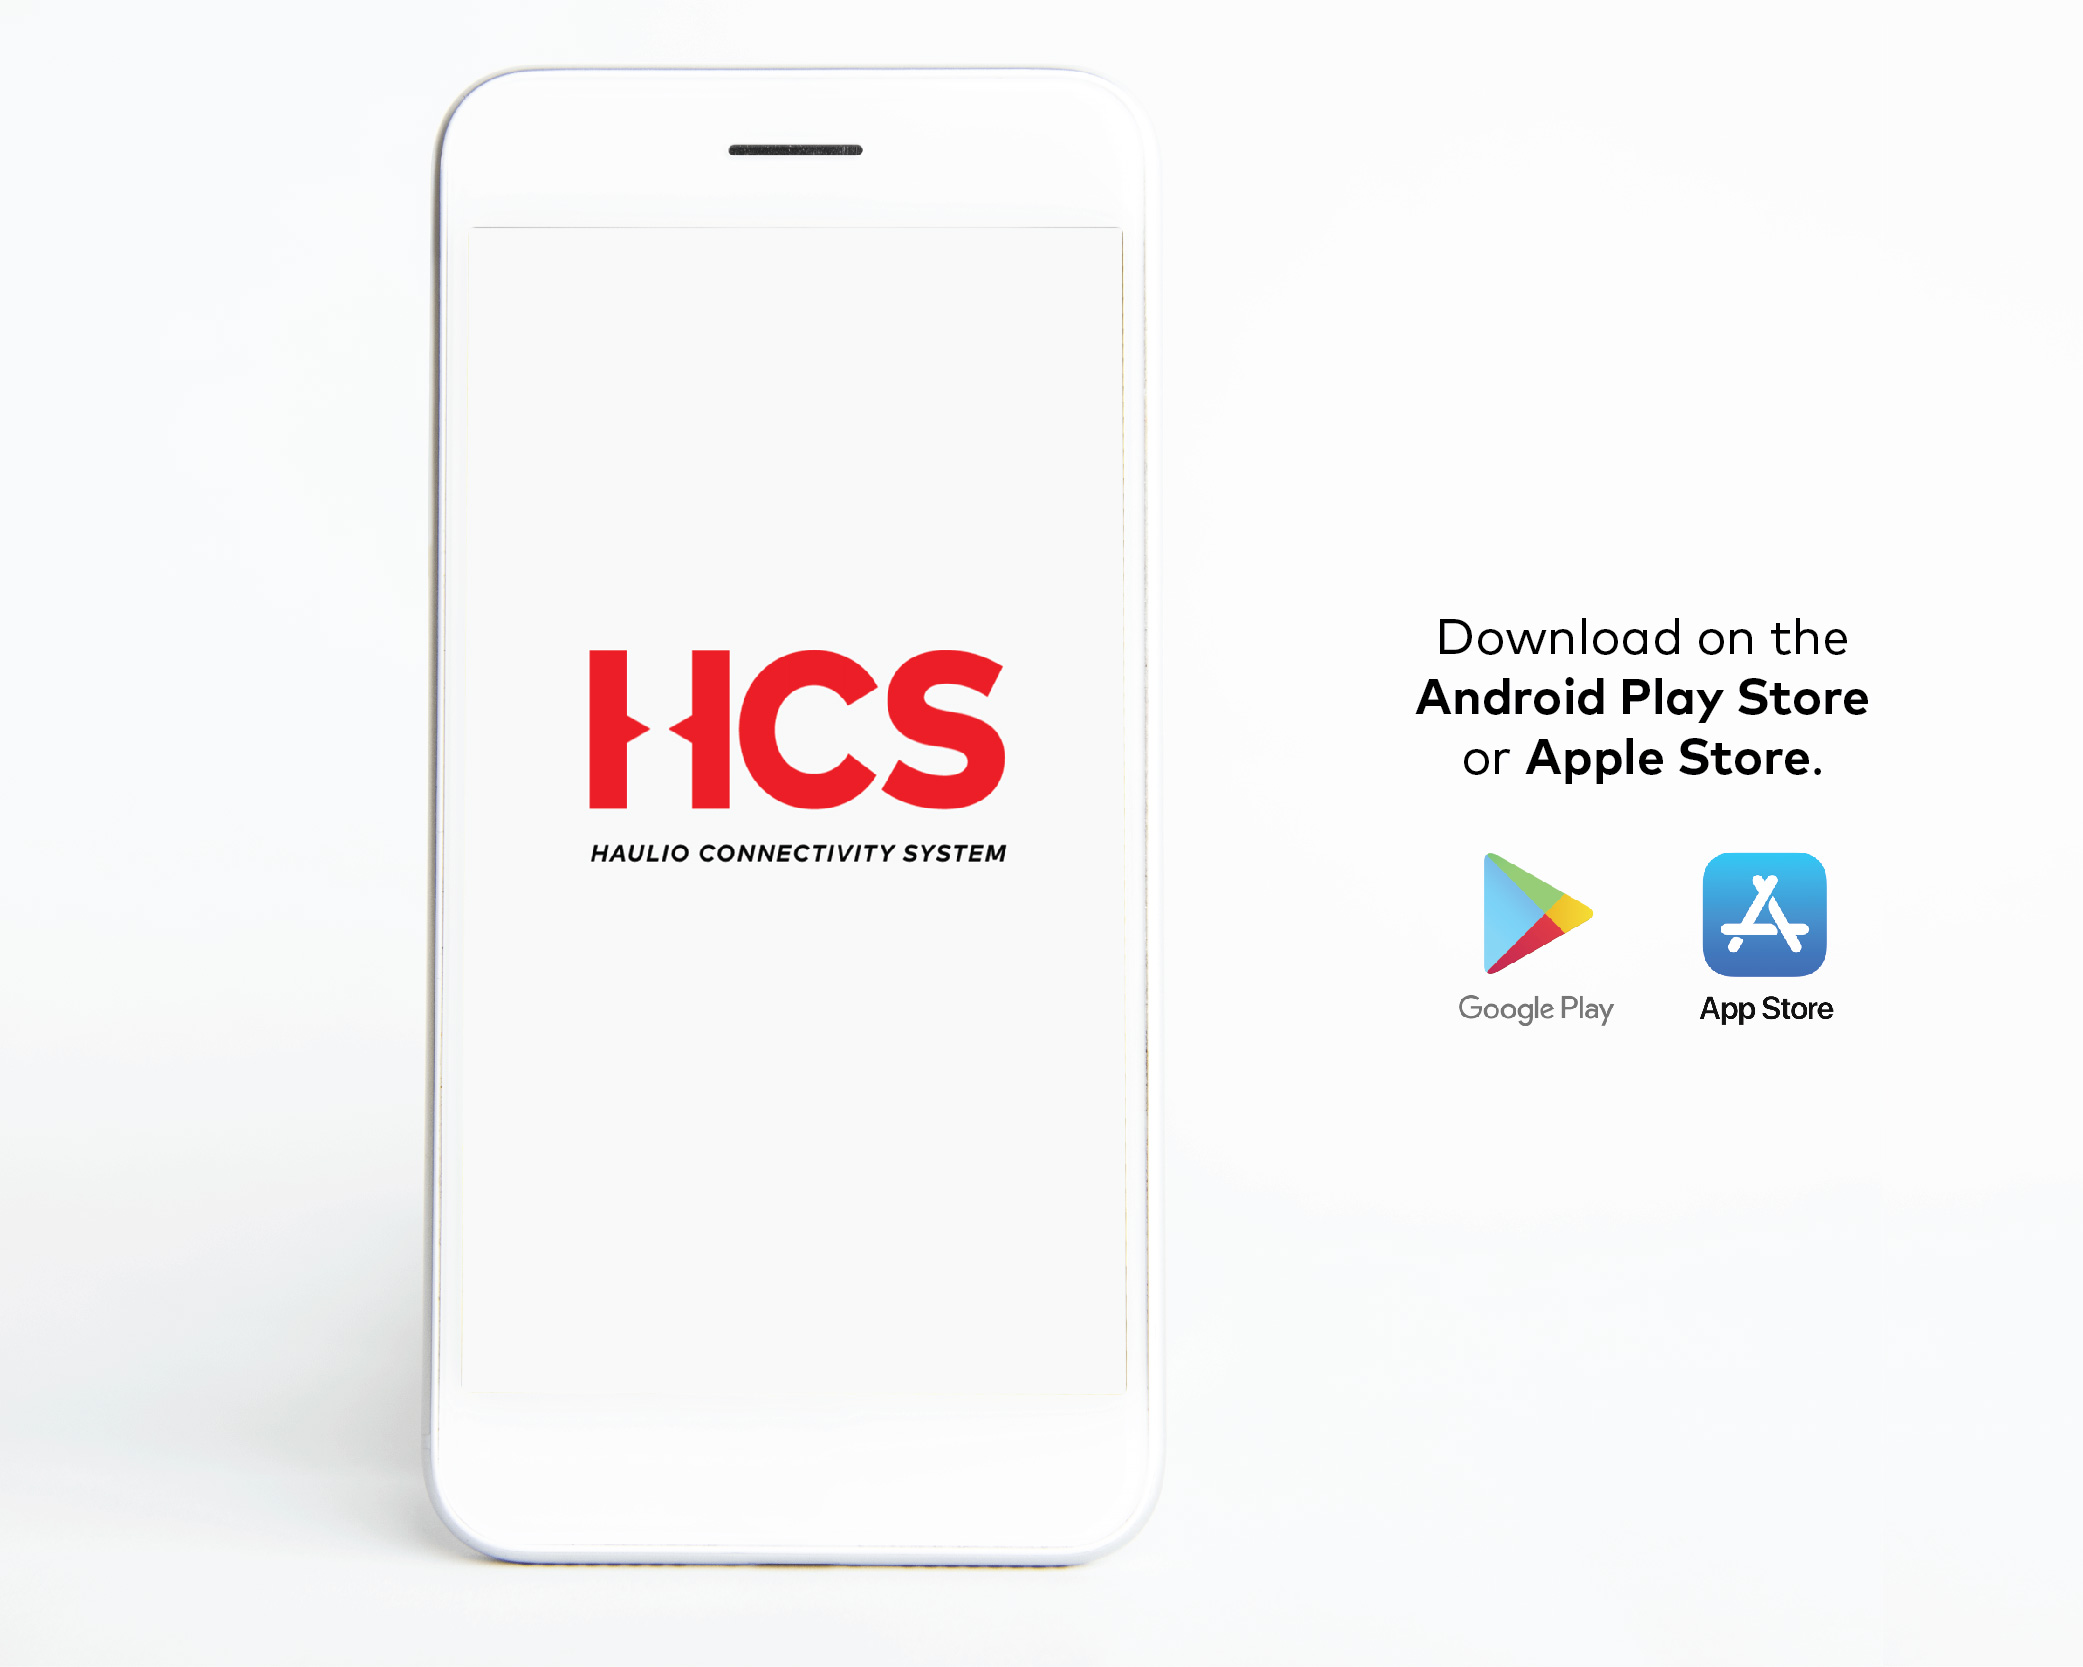 Download HCS on the Android Play Store and Apple Store